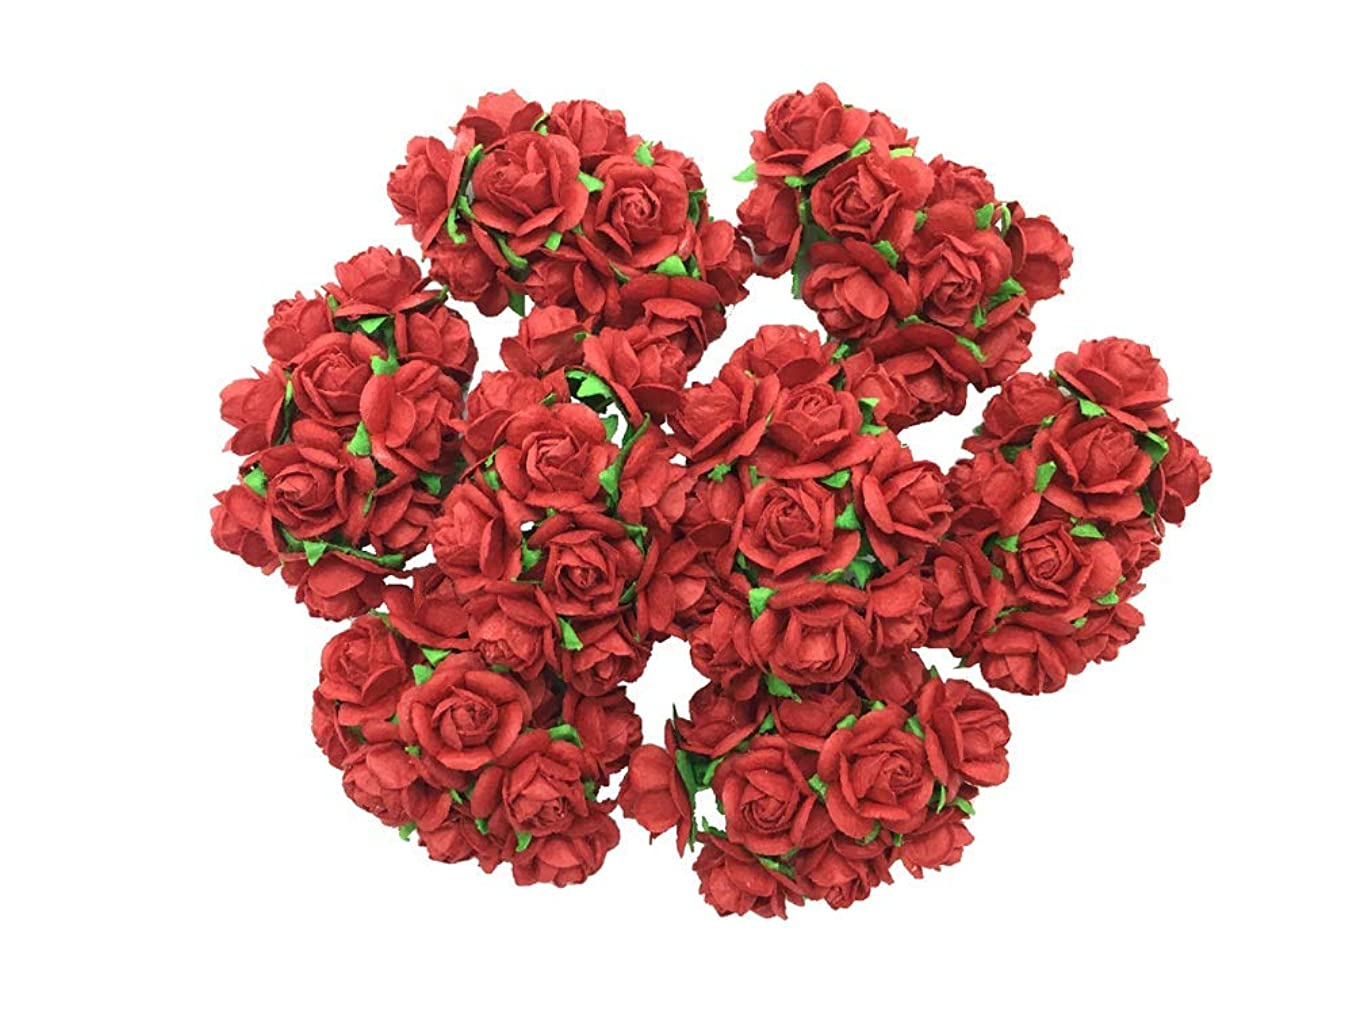 100 pcs Mini Red Rose Color Mulberry Paper Flower 10 mm Scrapbooking Wedding Doll House Supplies Card Mini Paper Flowers